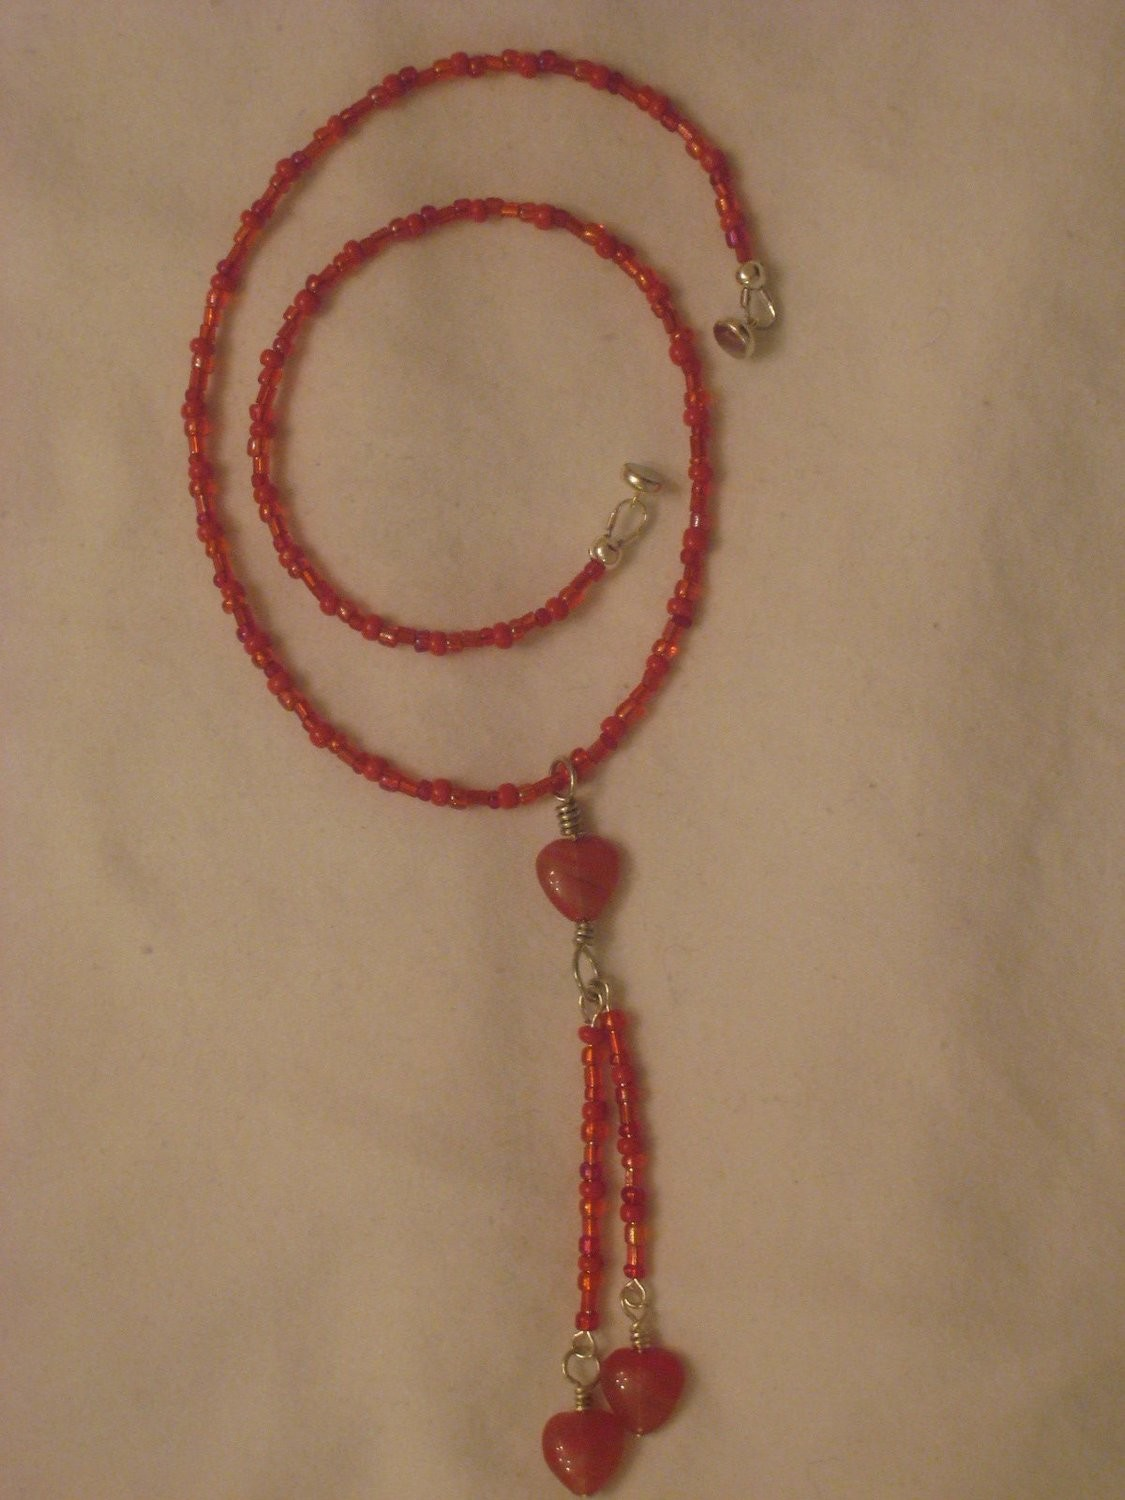 RED LOVE NECKLACE/ COLLIER AMOUR ROUGE